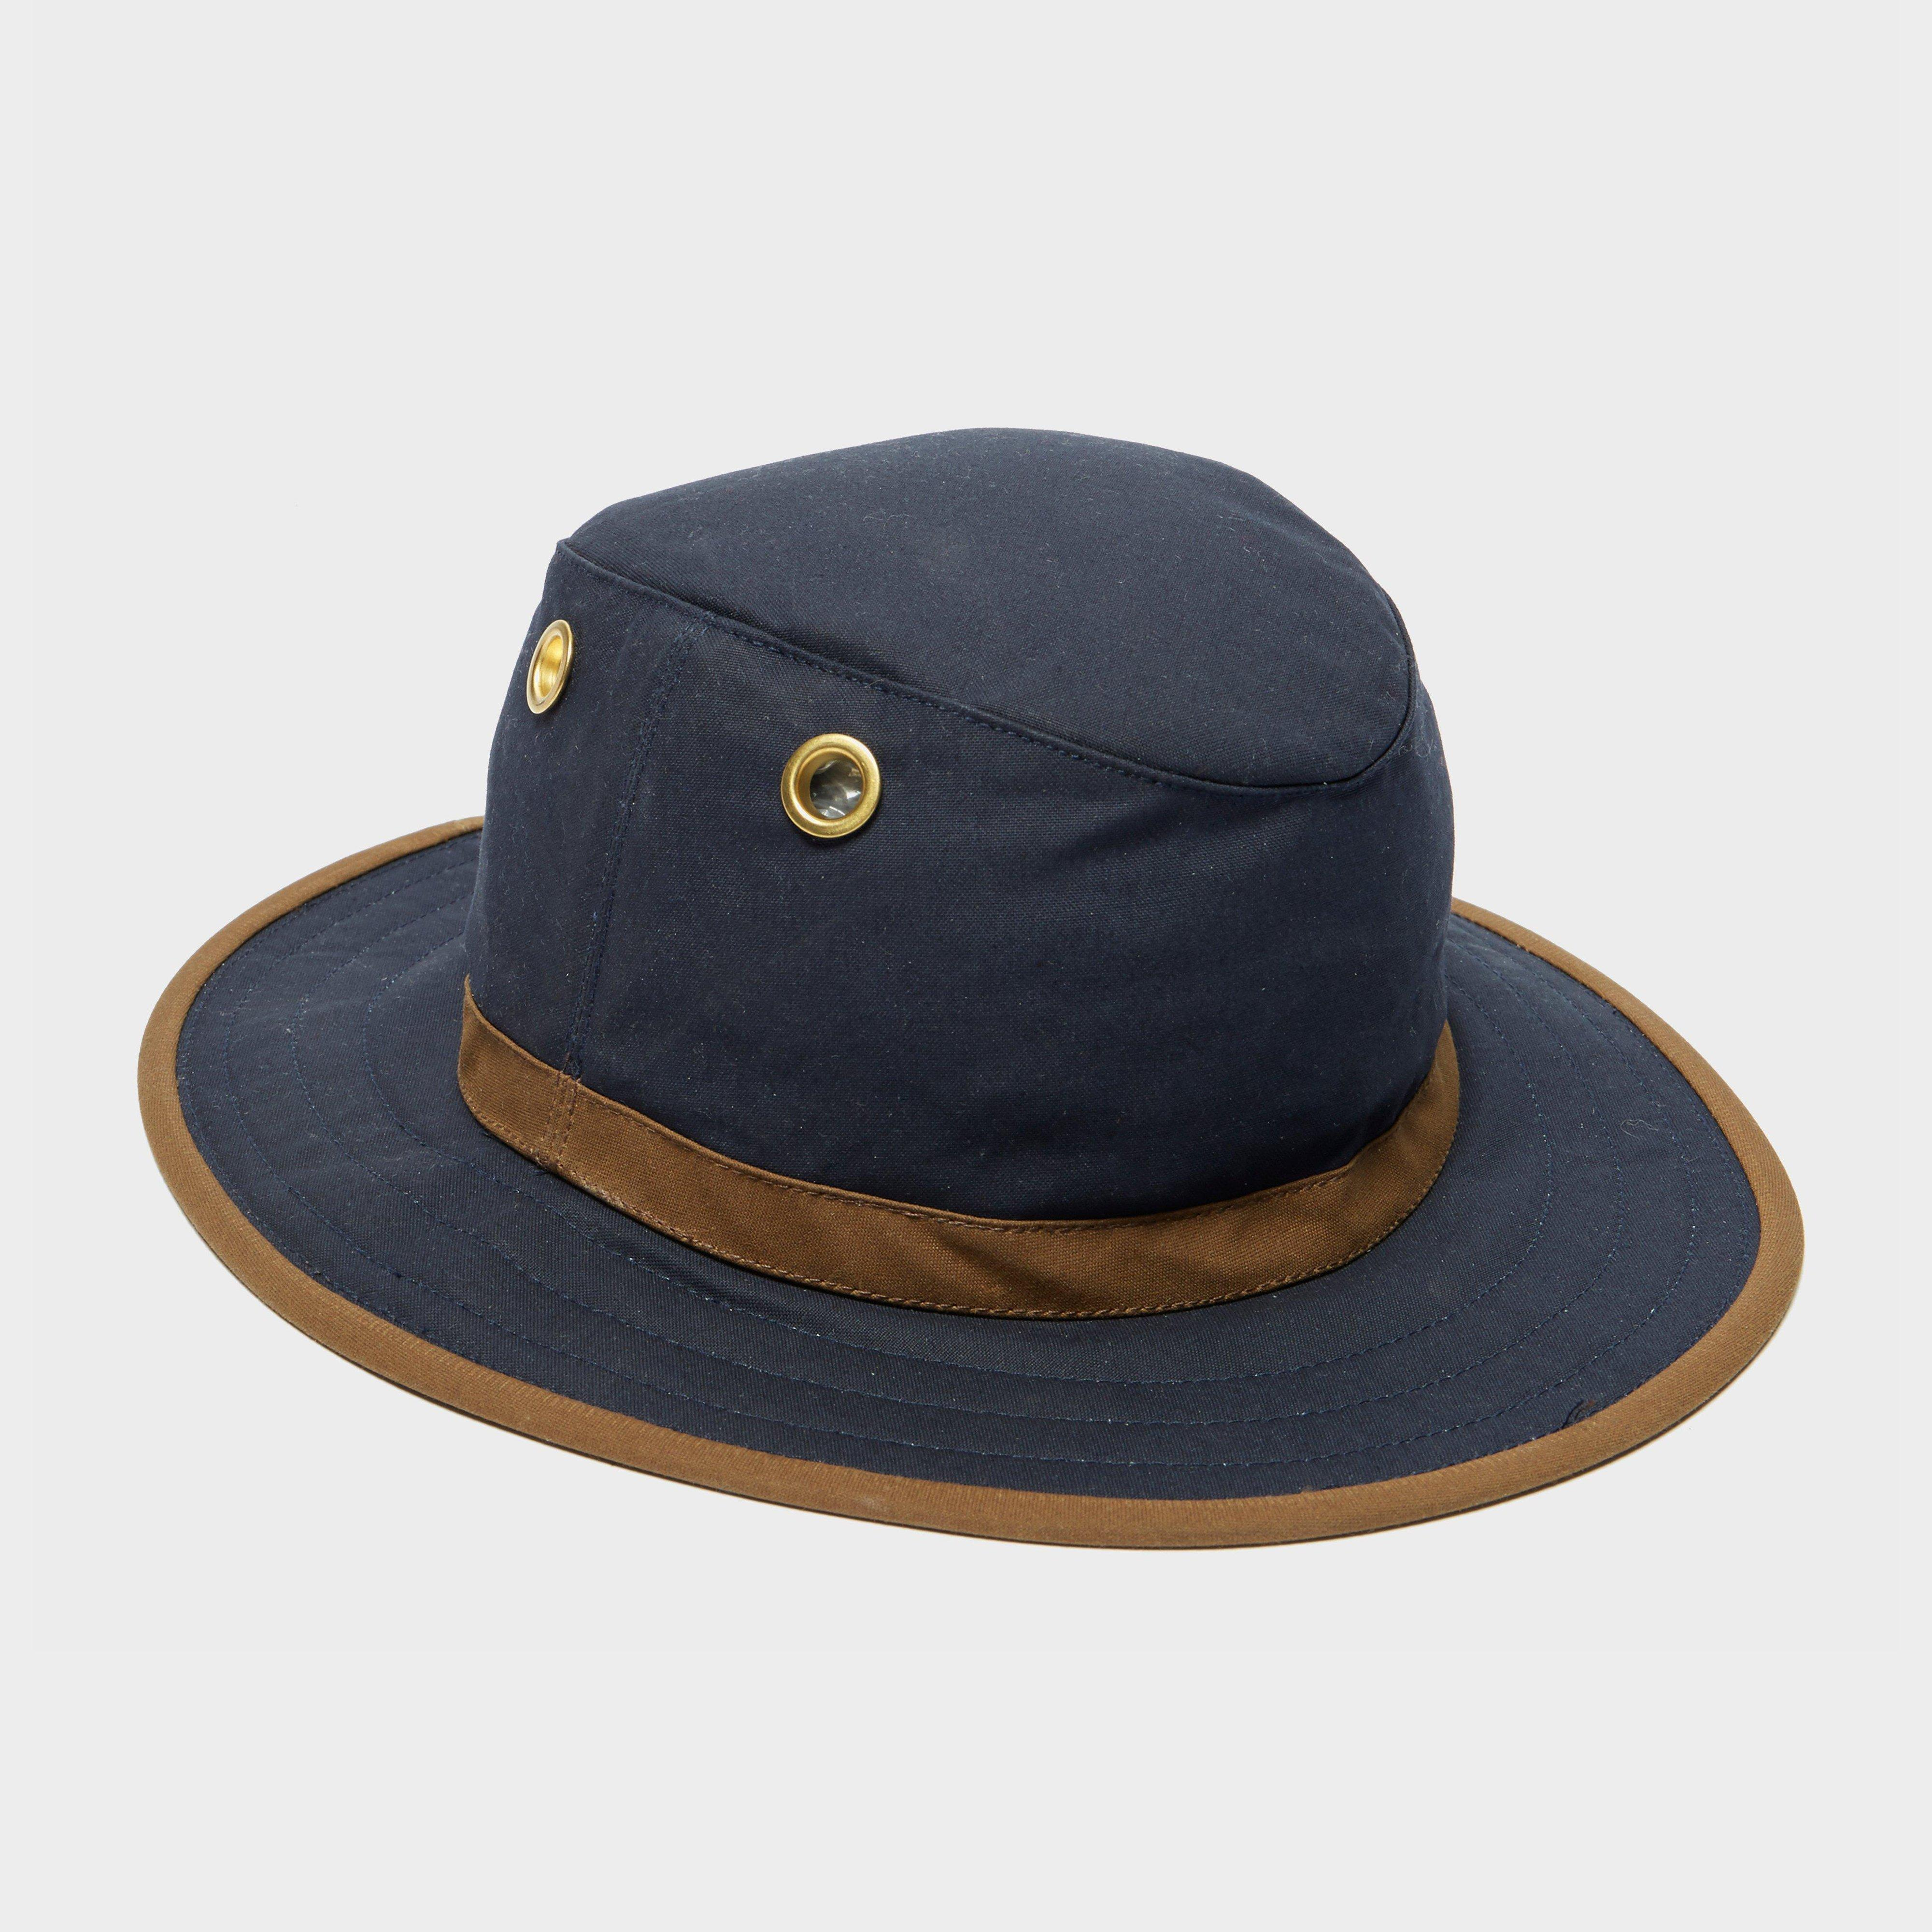 Tilley Tilley Mens TWC7 Outback Waxed Cotton Hat - Navy, Navy